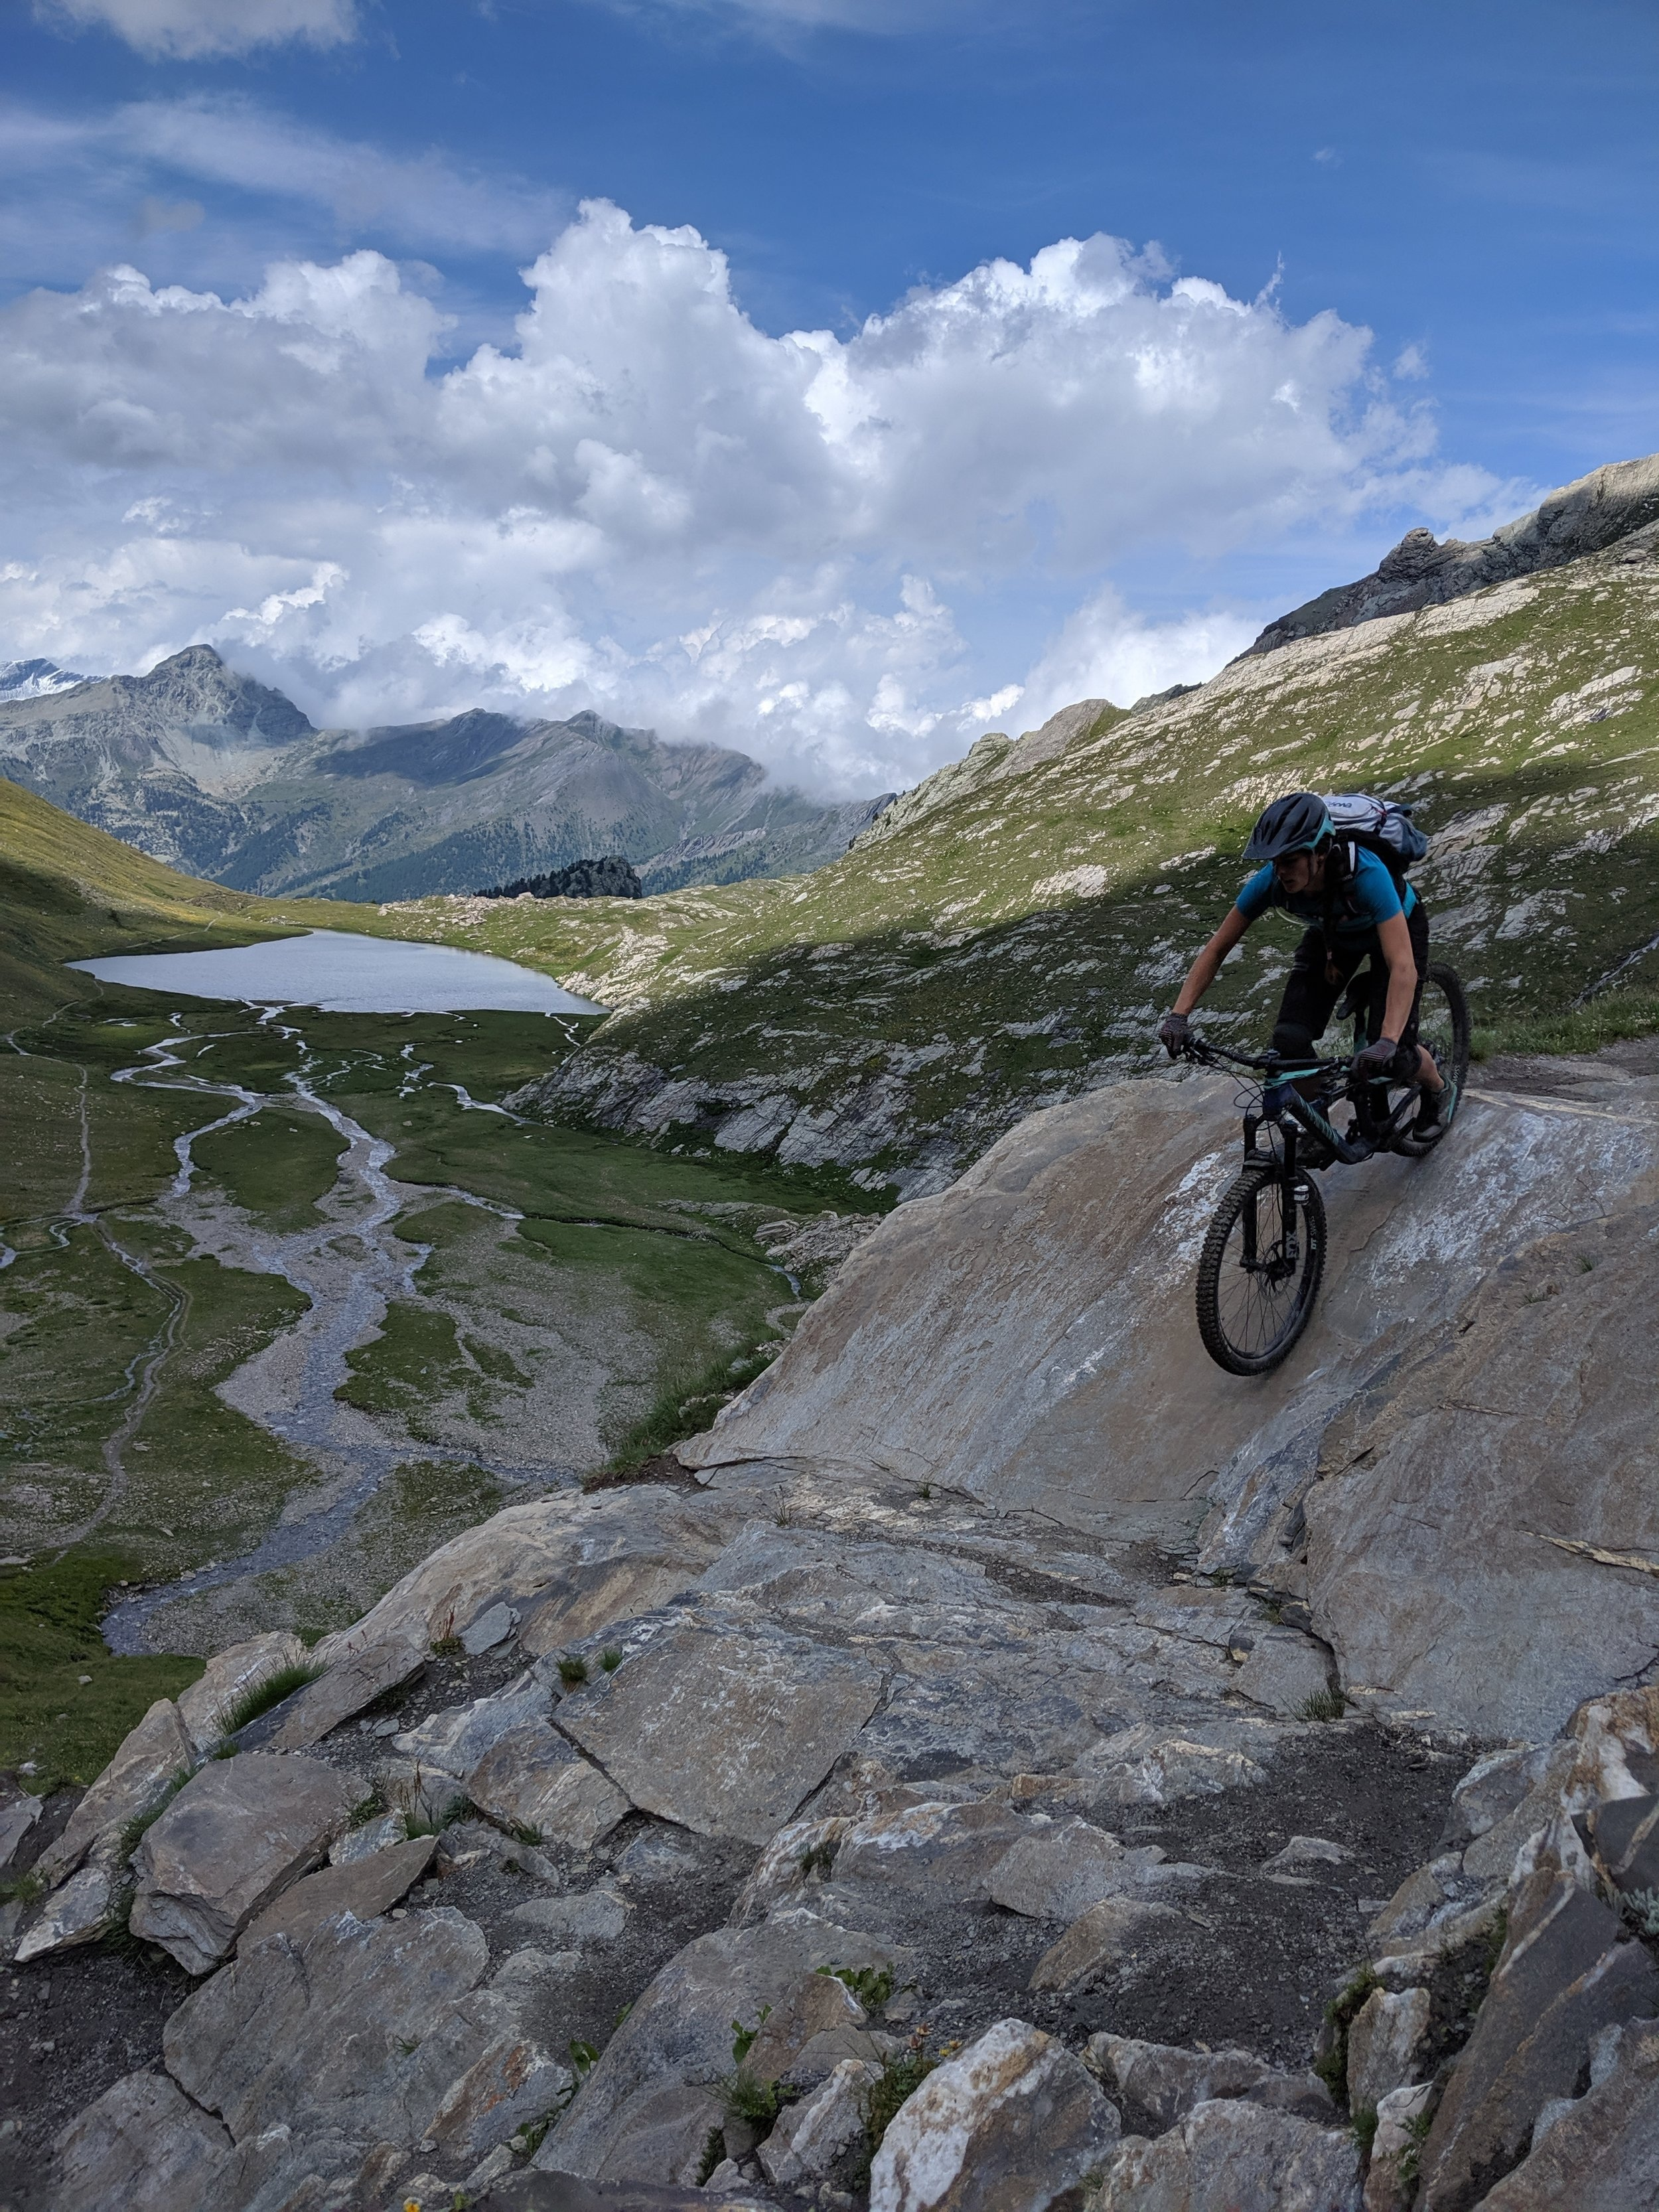 Mind-blowing Hautes-Alpes scenery and riding